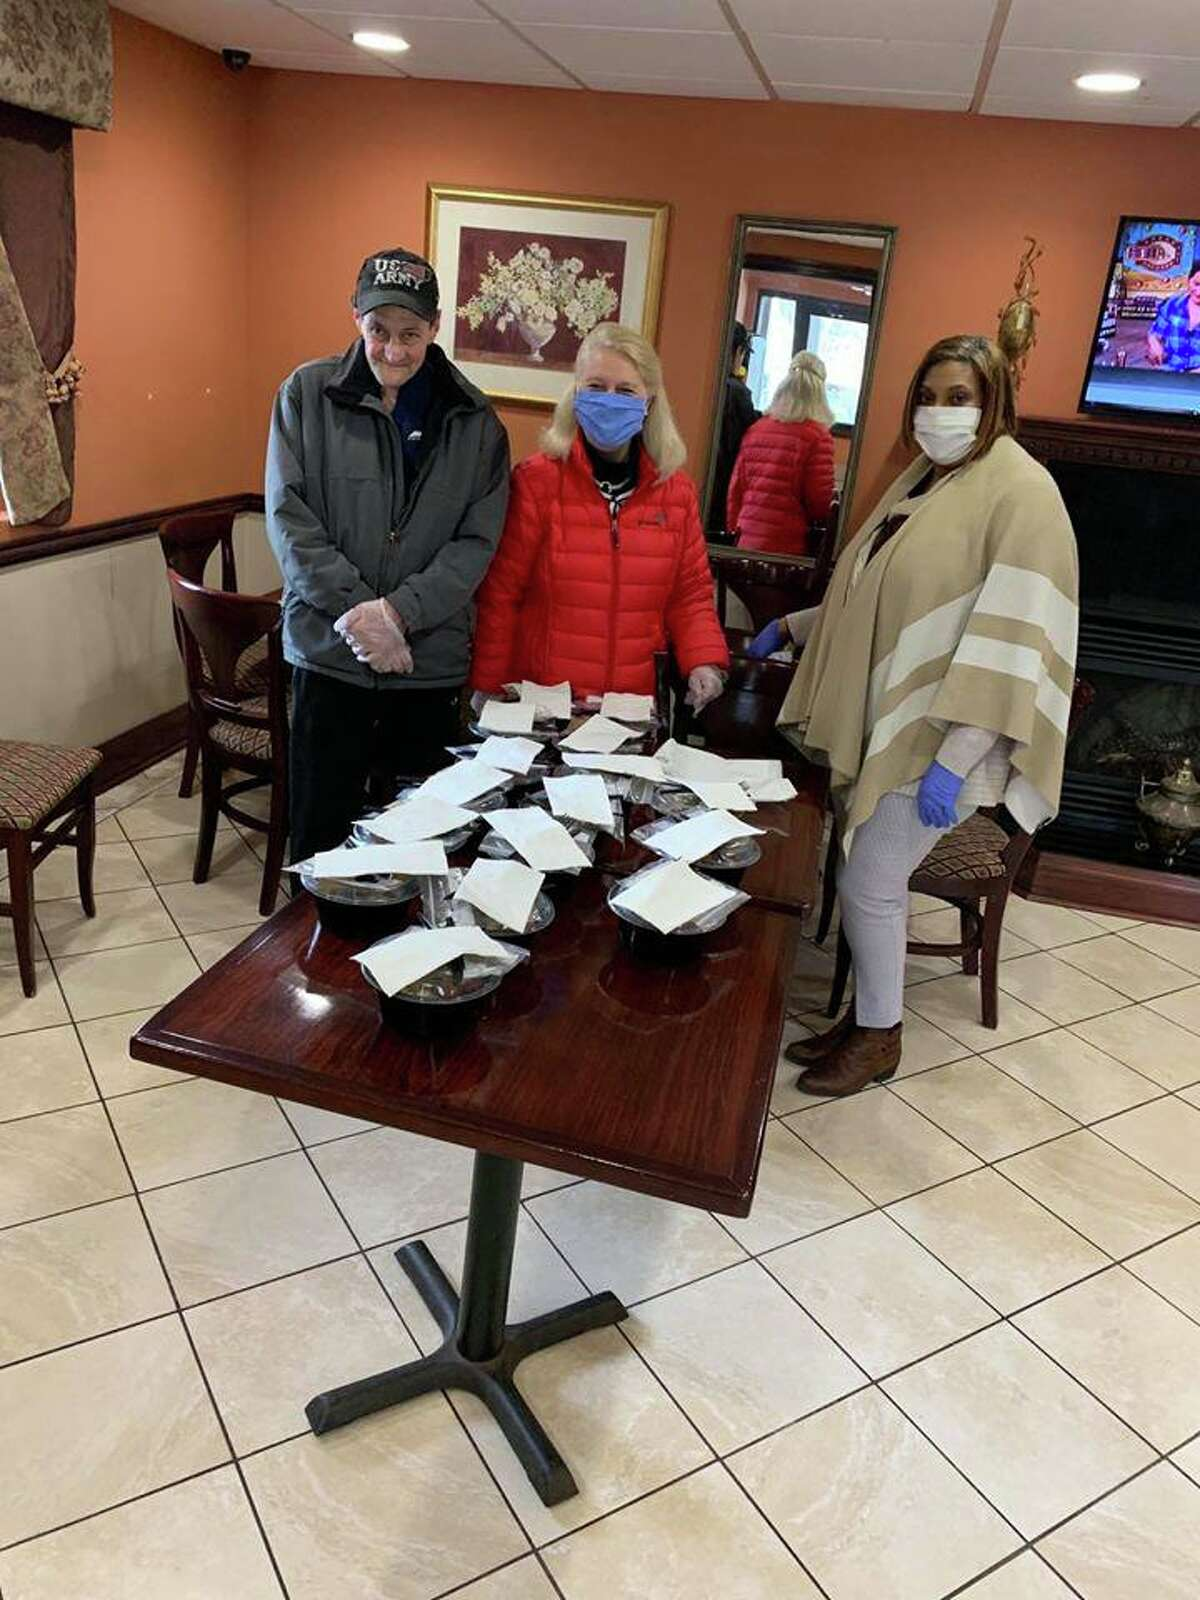 FISH residents show a donation of protective masks at the shelter.